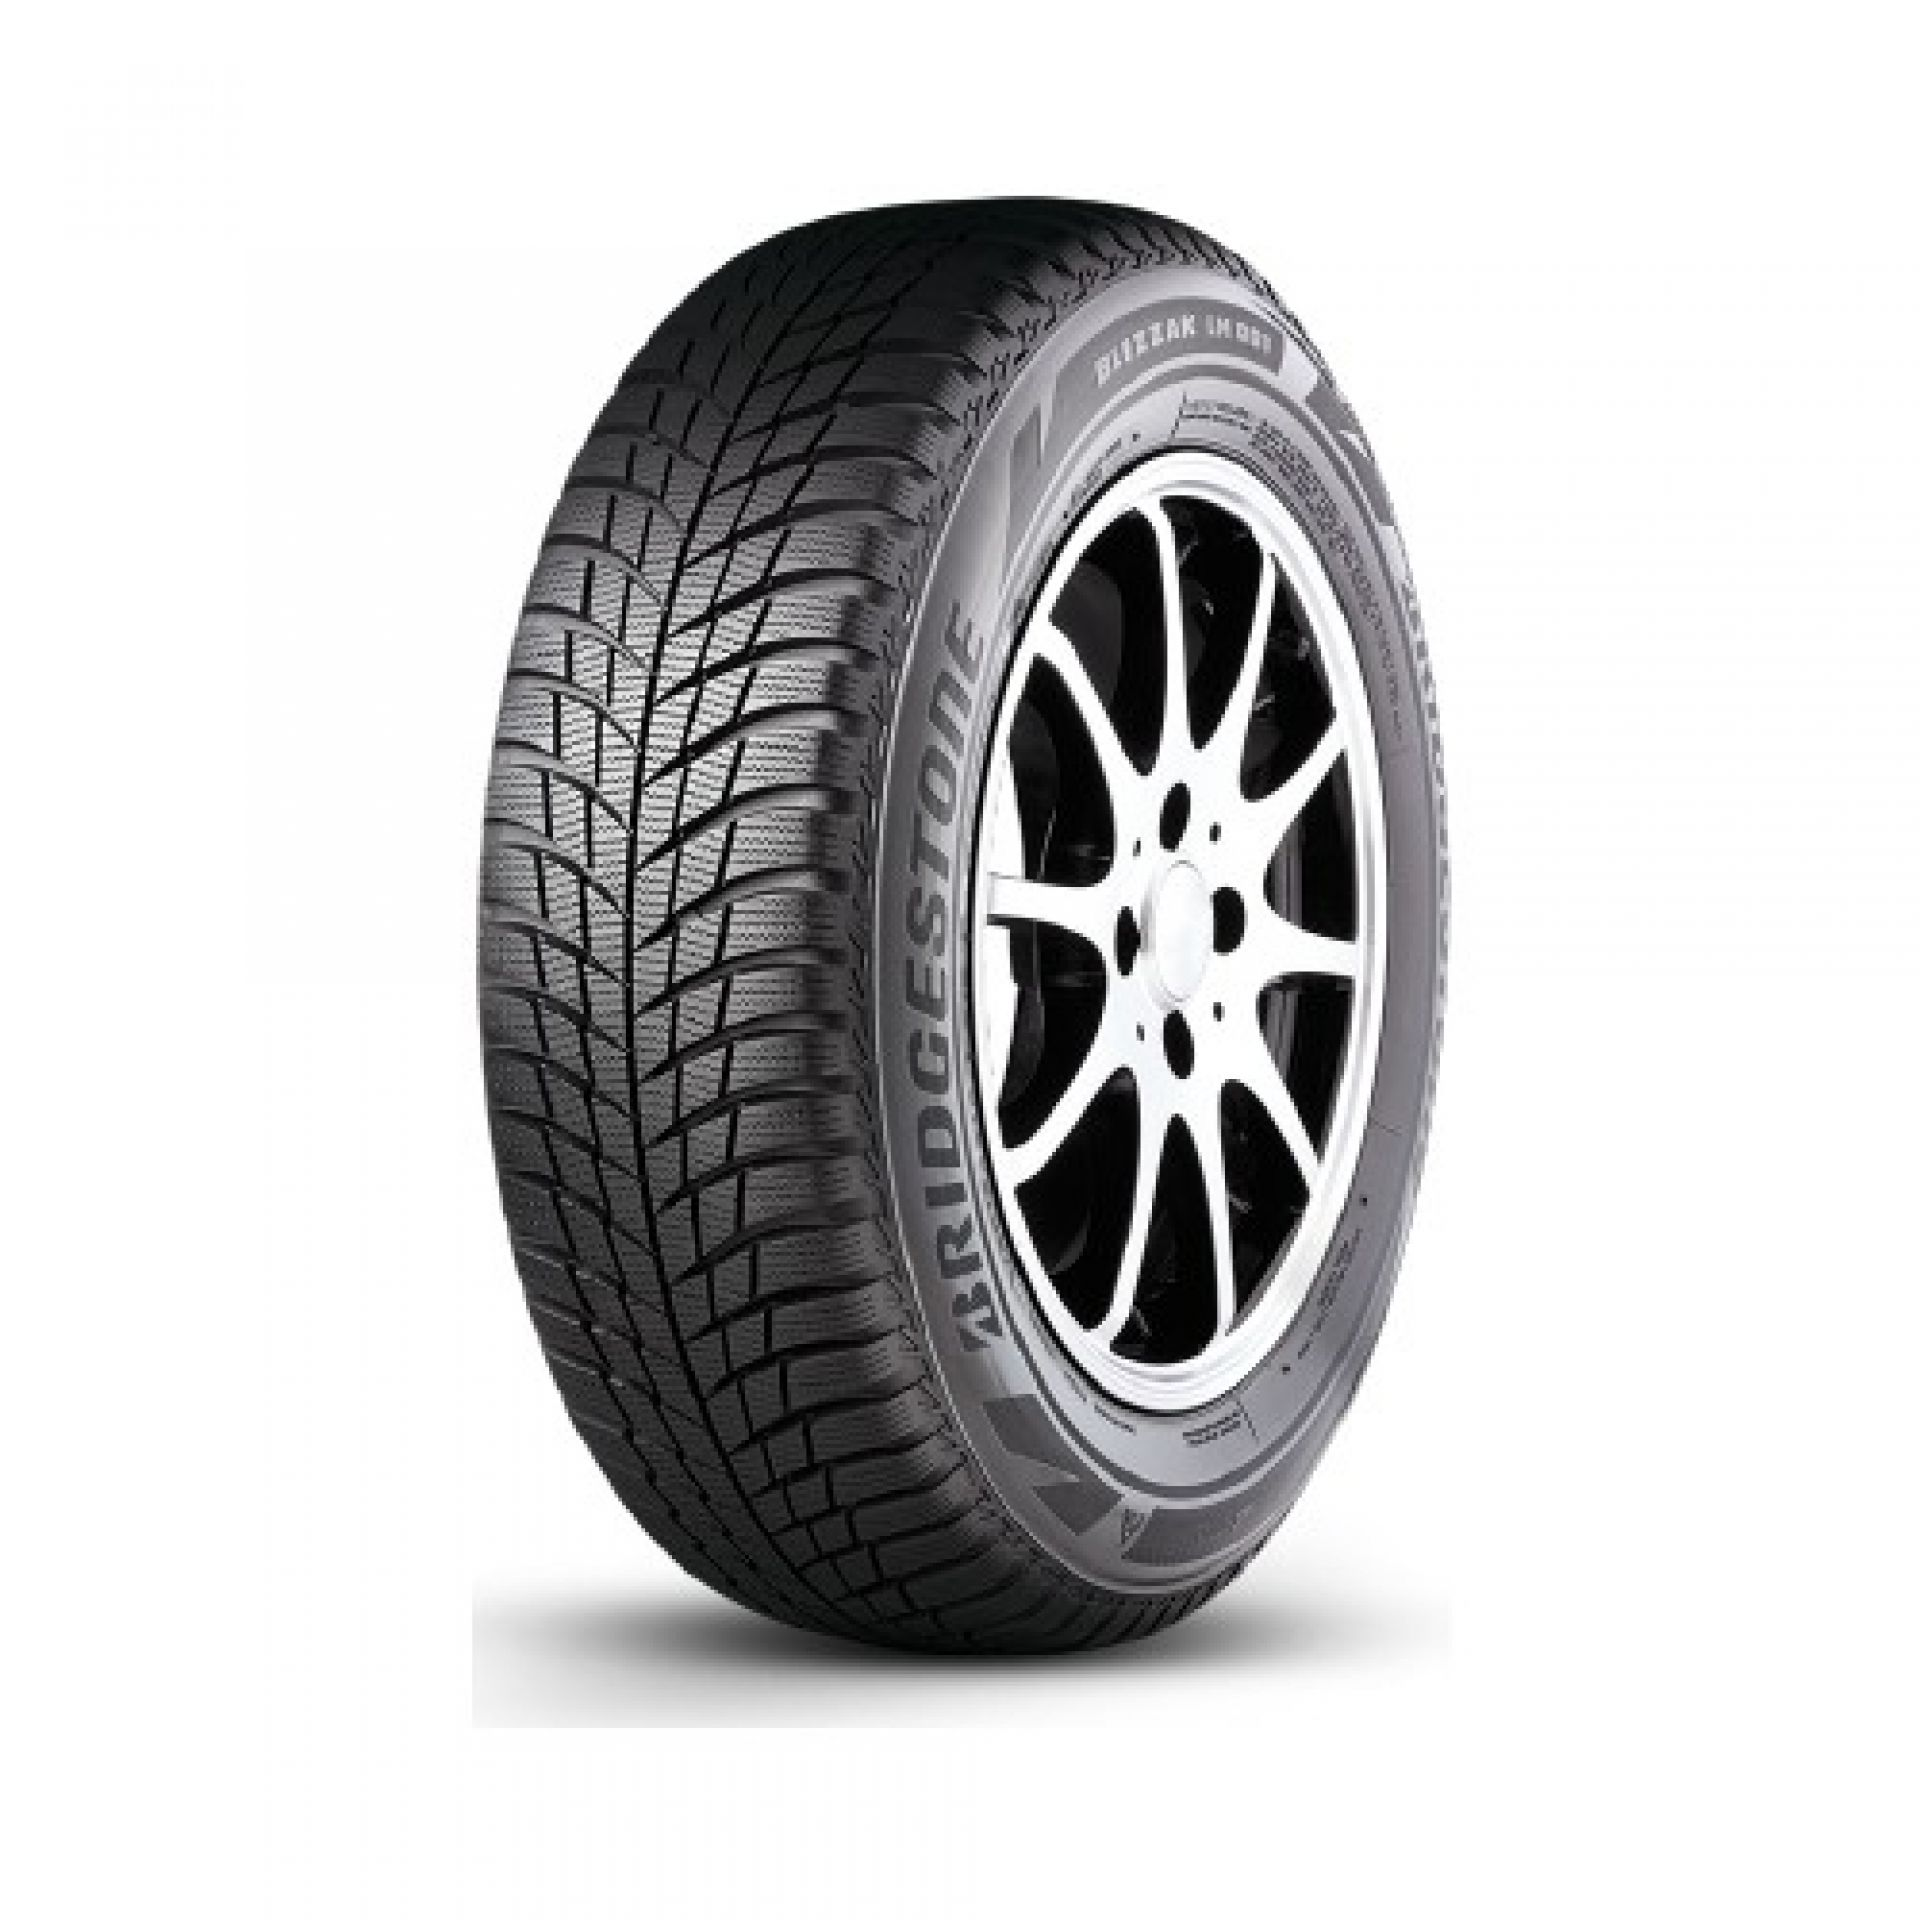 205/55r16 91h Lm001